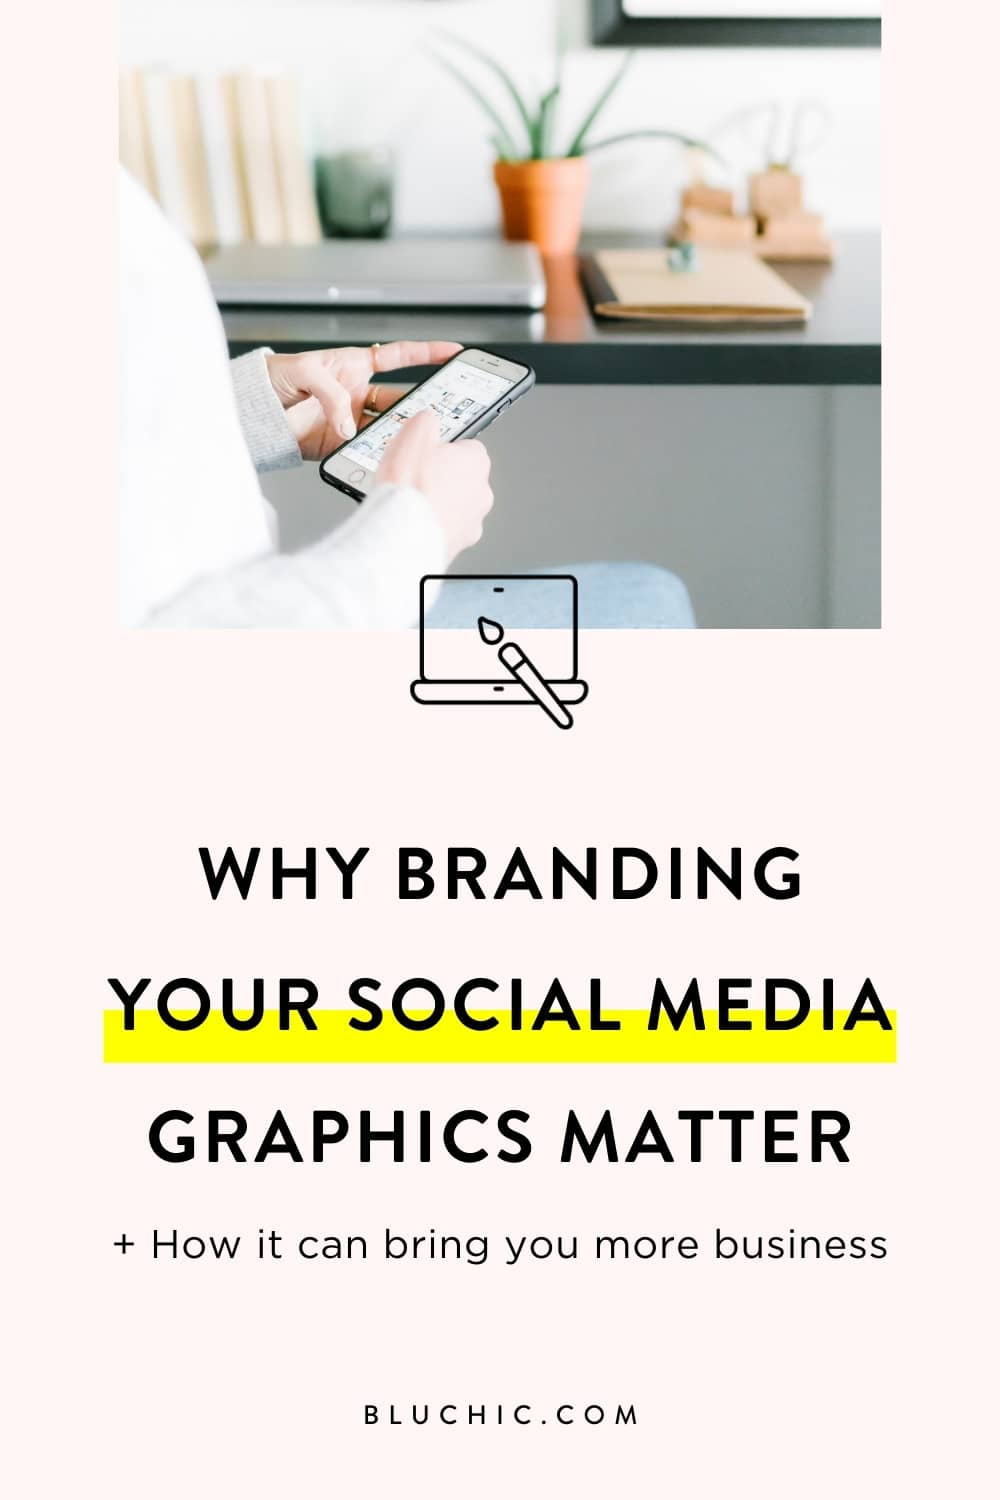 Why Branding Your Social Media Graphics Matter & How It Can Bring You More Business | Learn why branding your social media graphics is so important and the different ways it can actually bring you even more business!